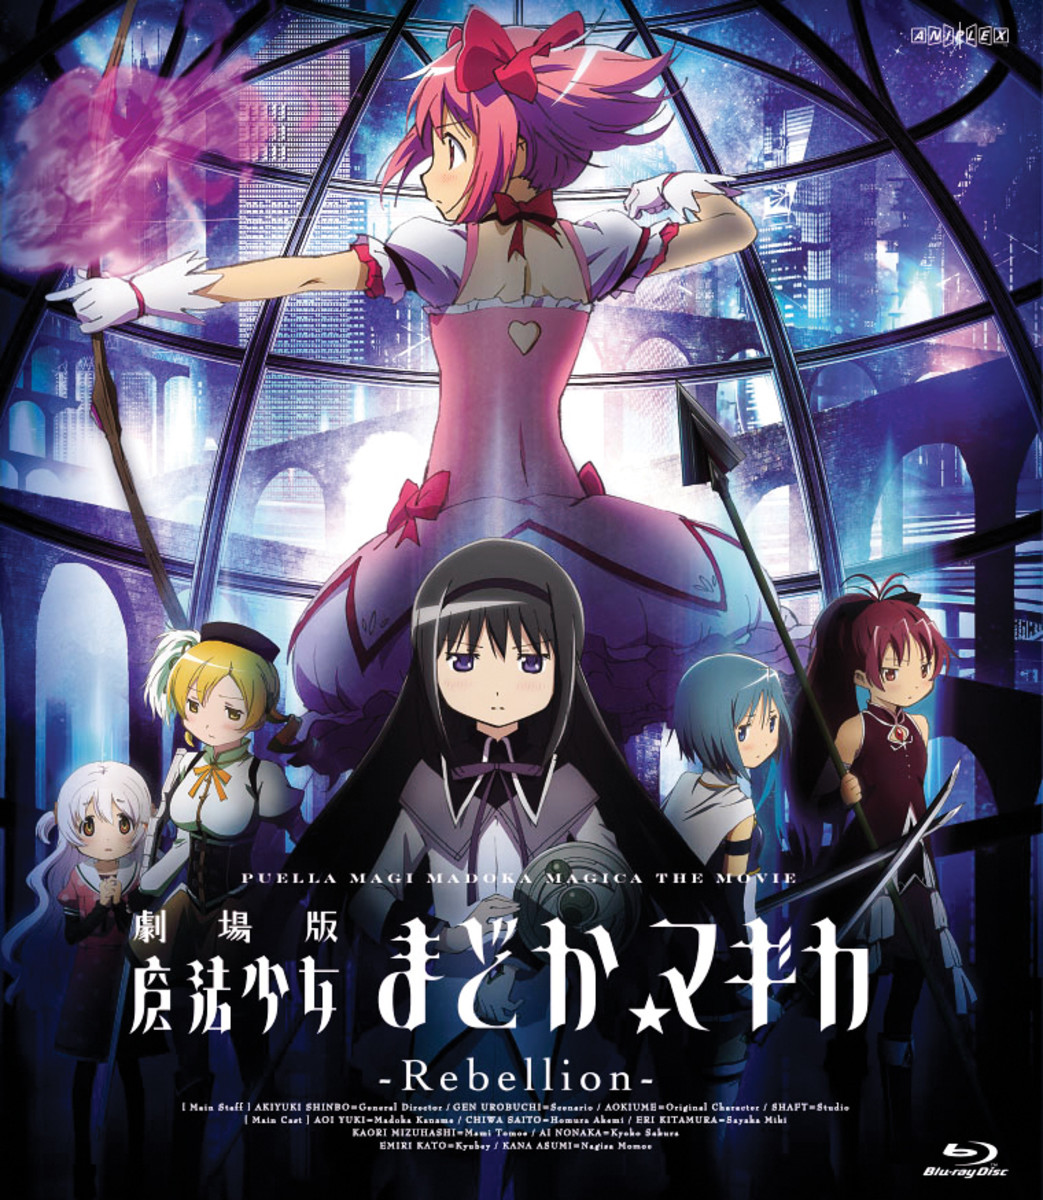 Anime Movie Review: Puella Magi Maodka Magica: Rebellion (2013)